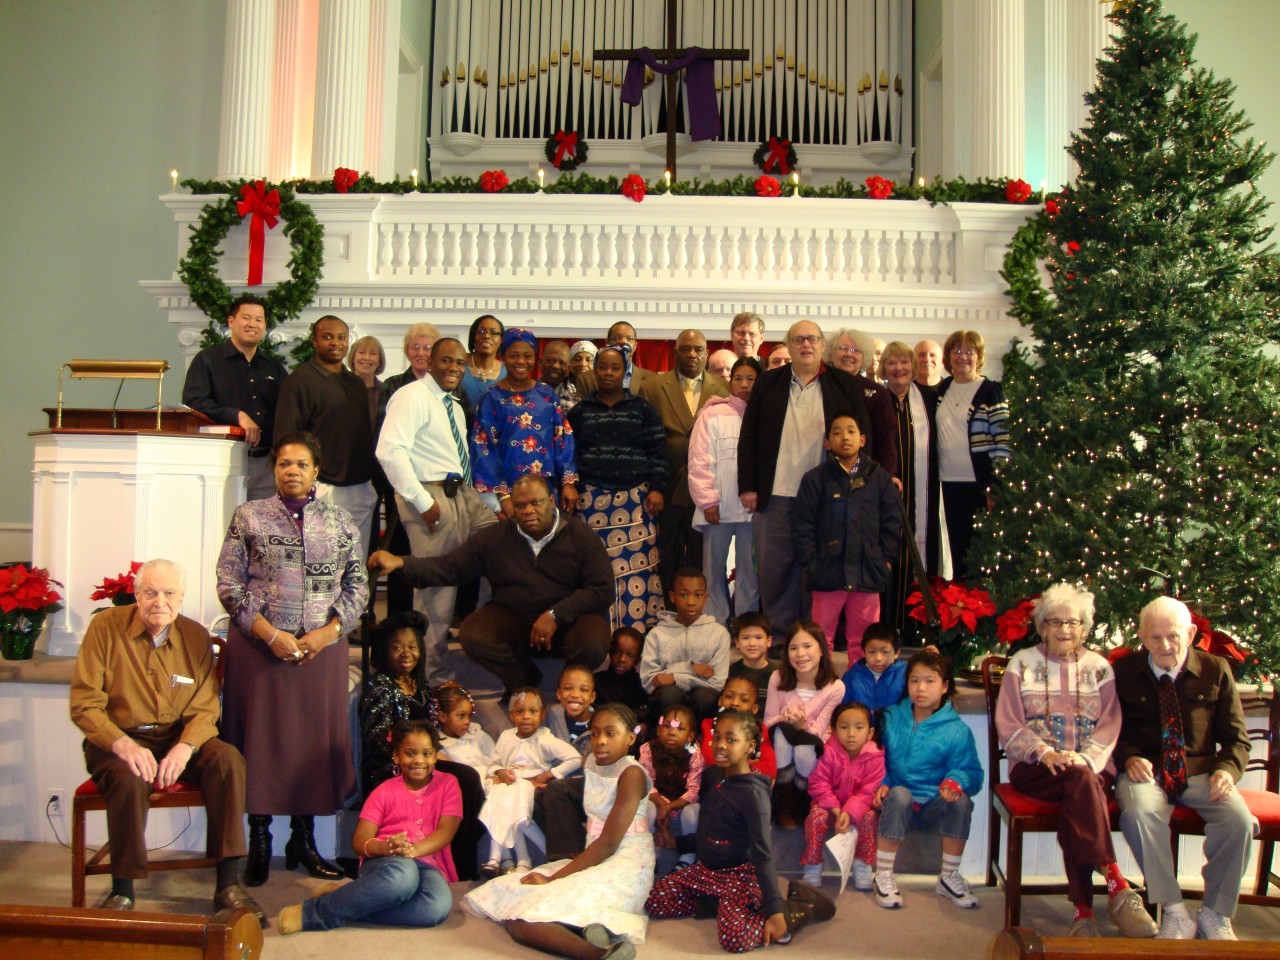 Congregation at Christmas